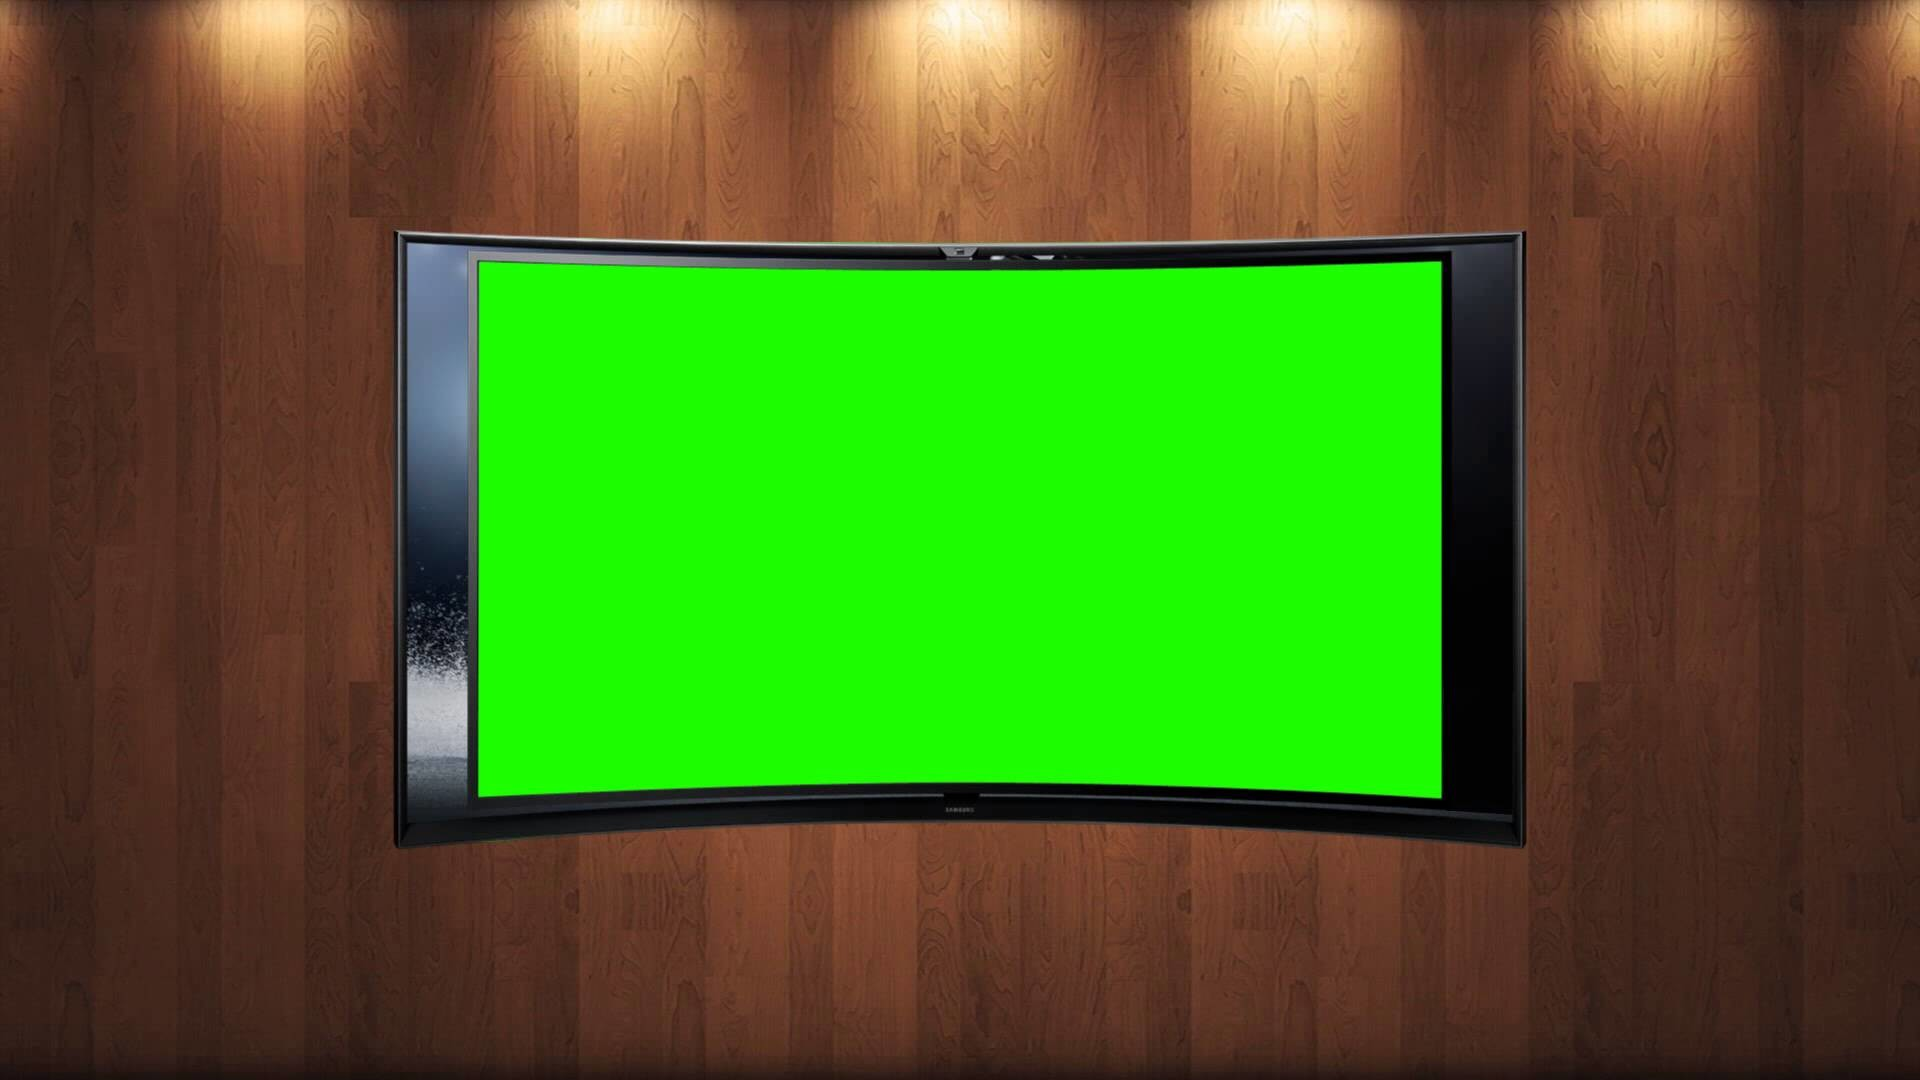 1920x1080 tv news studio background in green screen free stock footage